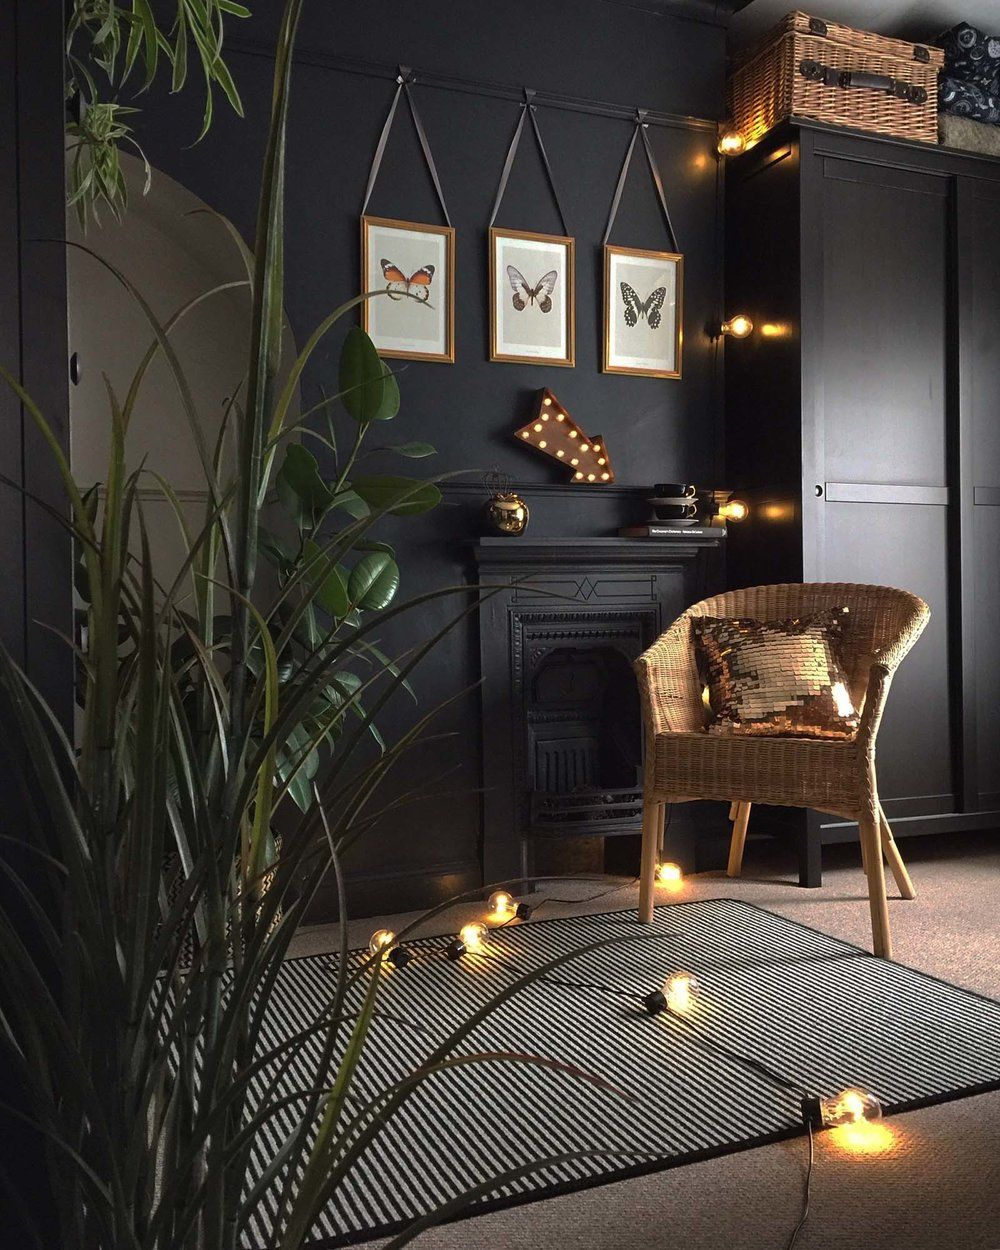 Dark and moody interiors are so on trend right now. Swap your white walls for dark, and create a gorgeously moody-yet-luxe vibe in your home.